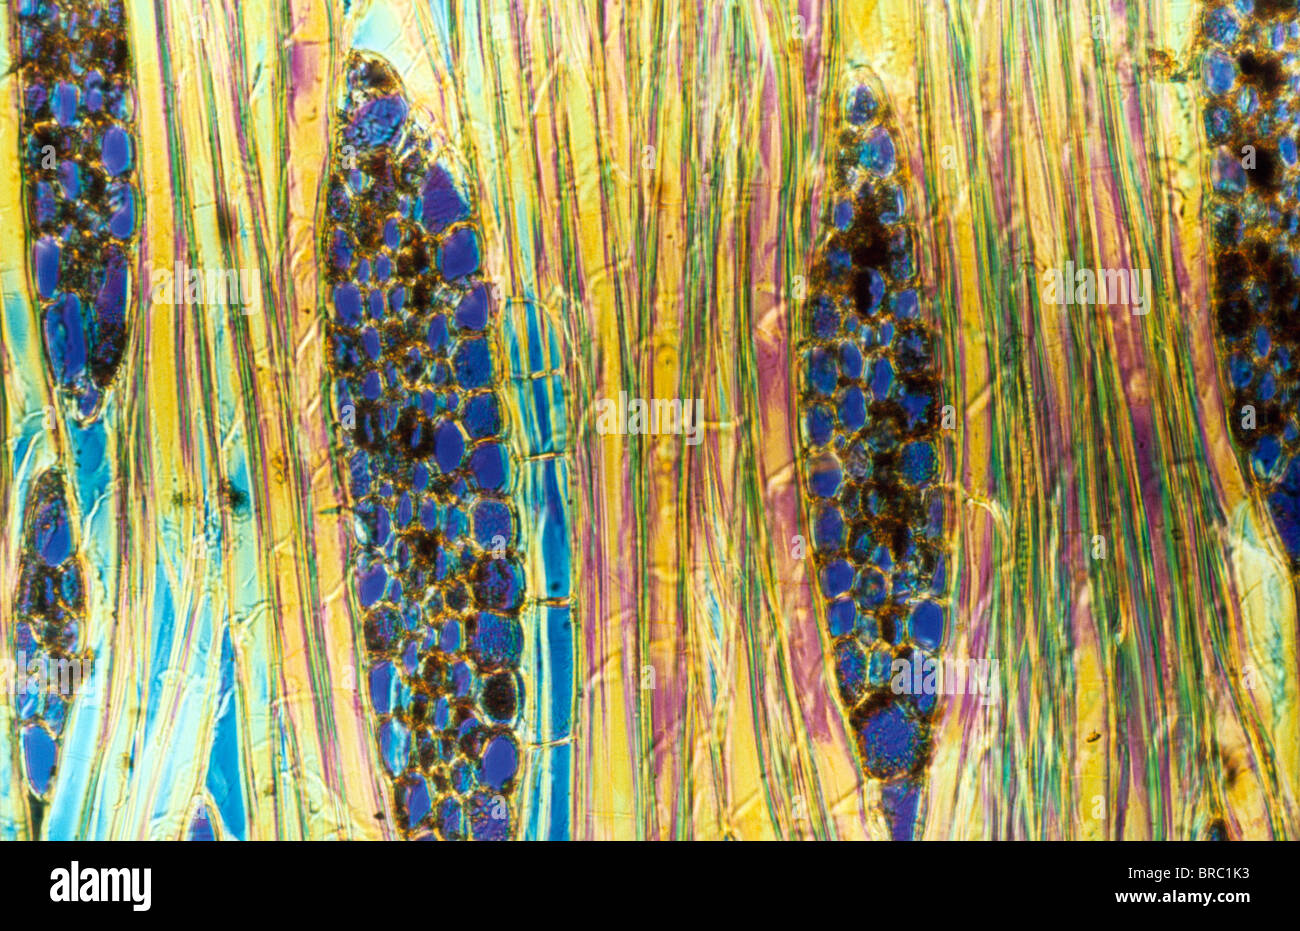 Light Micrograph (LM) of a longitudinal section showing xylem elements of Mahogany wood (Pinus sylvestris), magnification - Stock Image